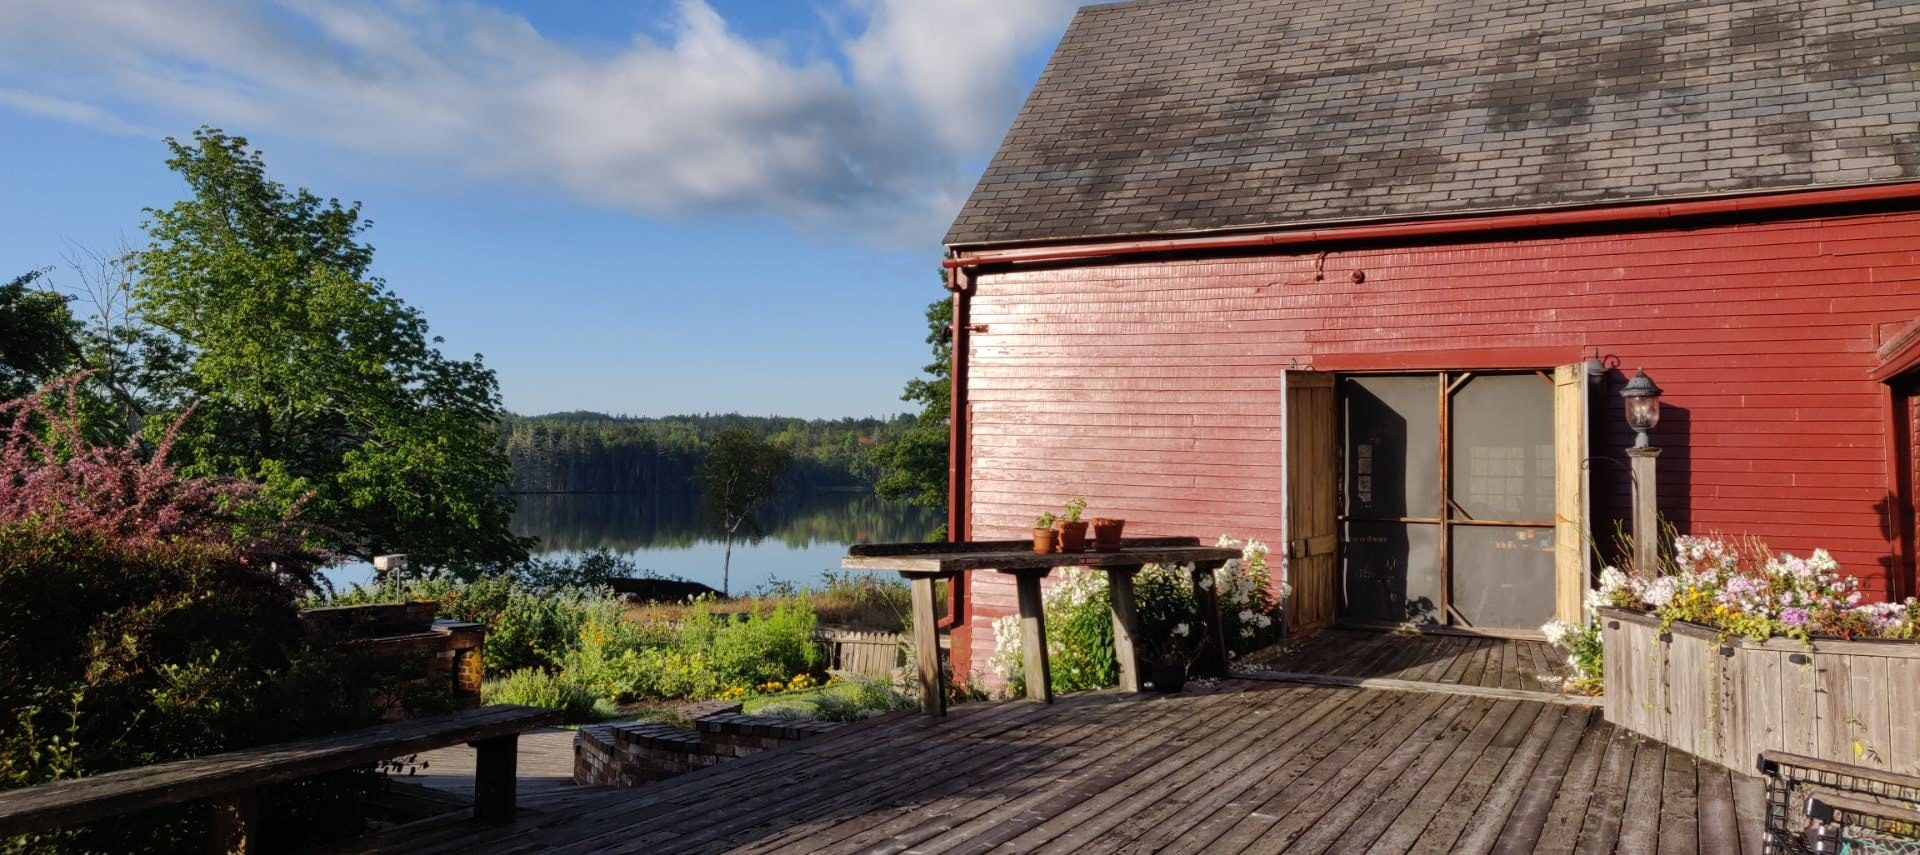 Exterior view of property painted dark red with a wooden deck surrounded by flowers, plants, and trees with a body of water and trees in the background